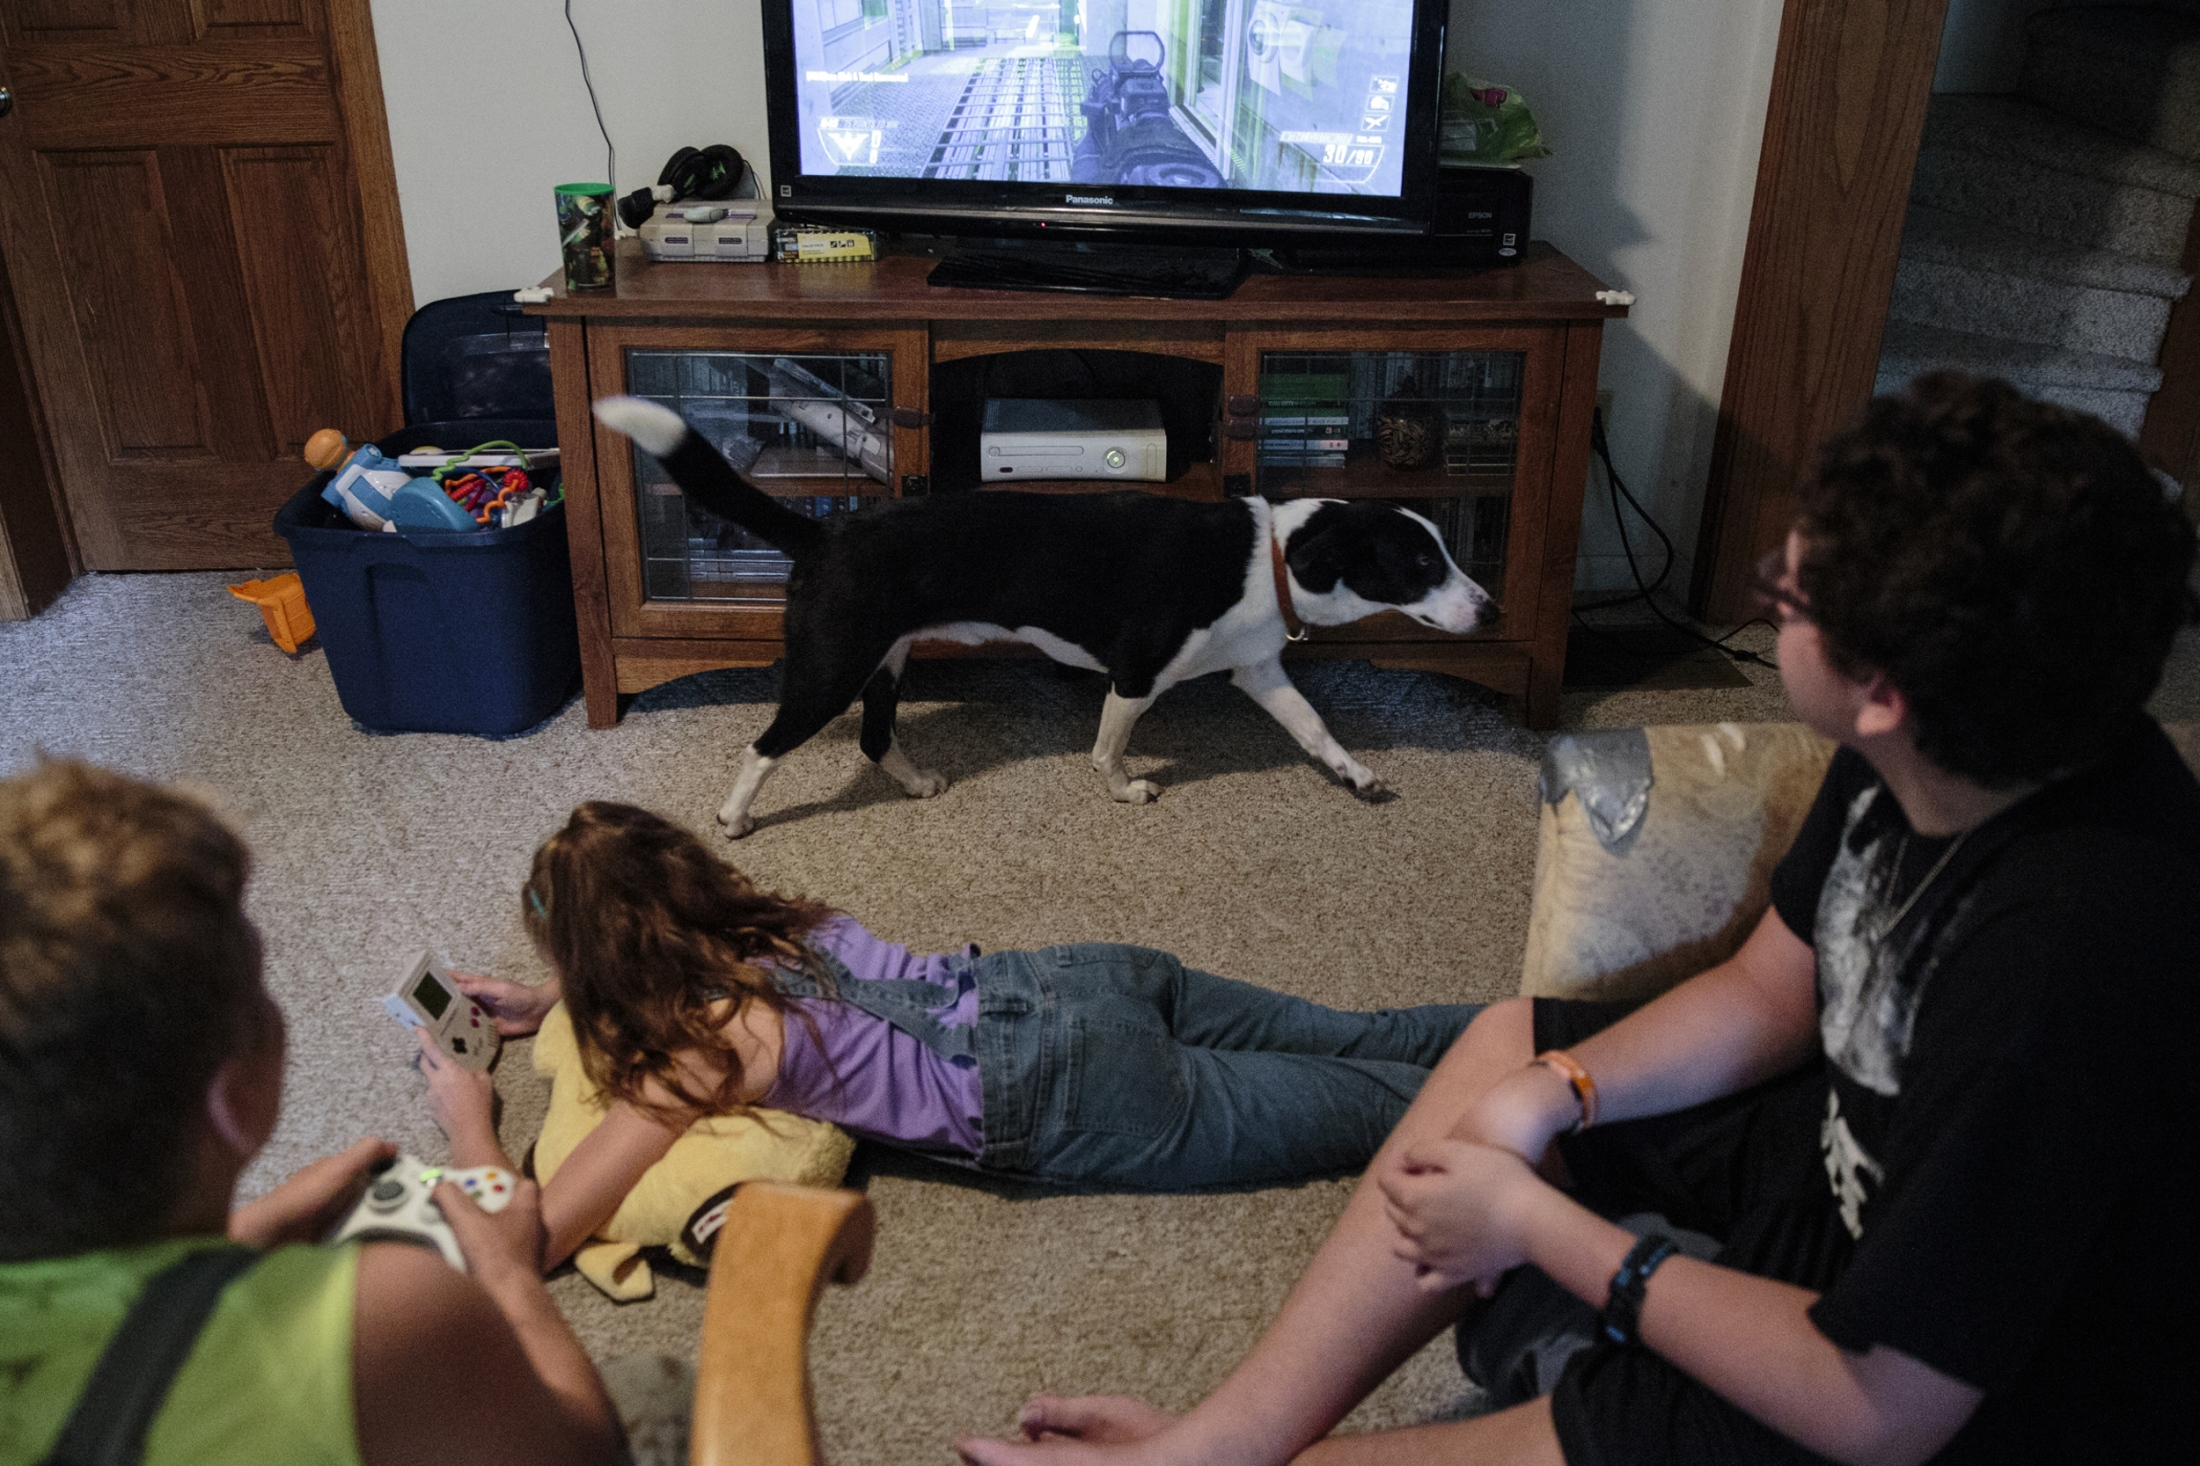 Chad's six-year-old dog Spudz passes Harkin, Mackenzie, and their older brother Logan Bartlett, 14, as they play video games in the living room. During the weekdays, everything falls onto Chad's shoulders. He said his biggest challenge is juggling his 50-hour-per-week trucking job and taking care of the animals by himself when the siblings are at their mother's in Allendale, Michigan.